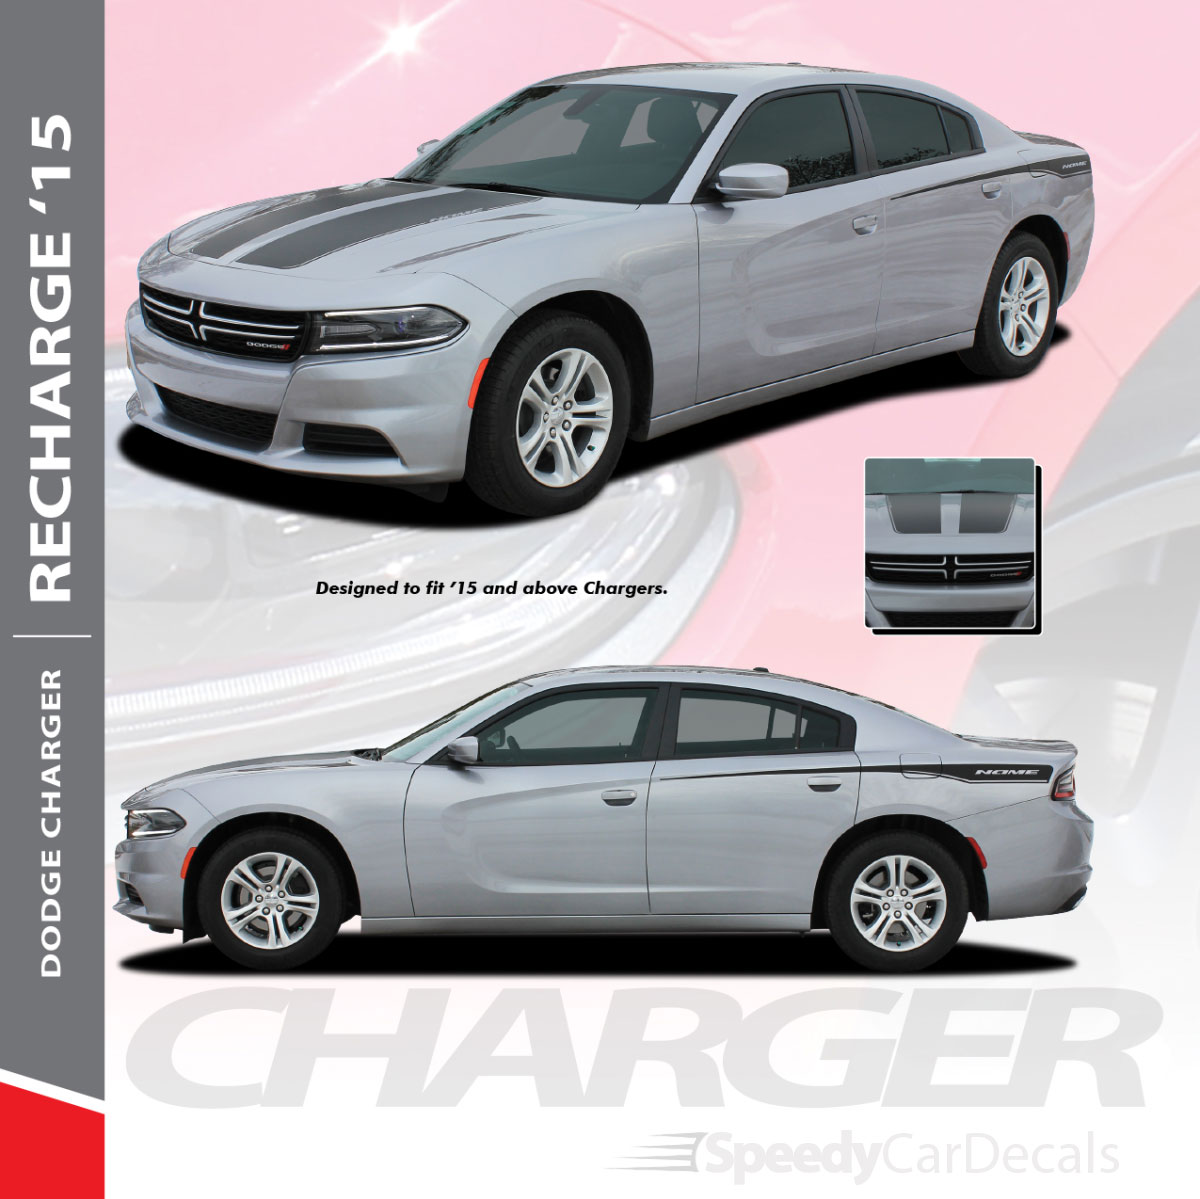 2018 Dodge Charger Decals 15 Recharge 2015 2021